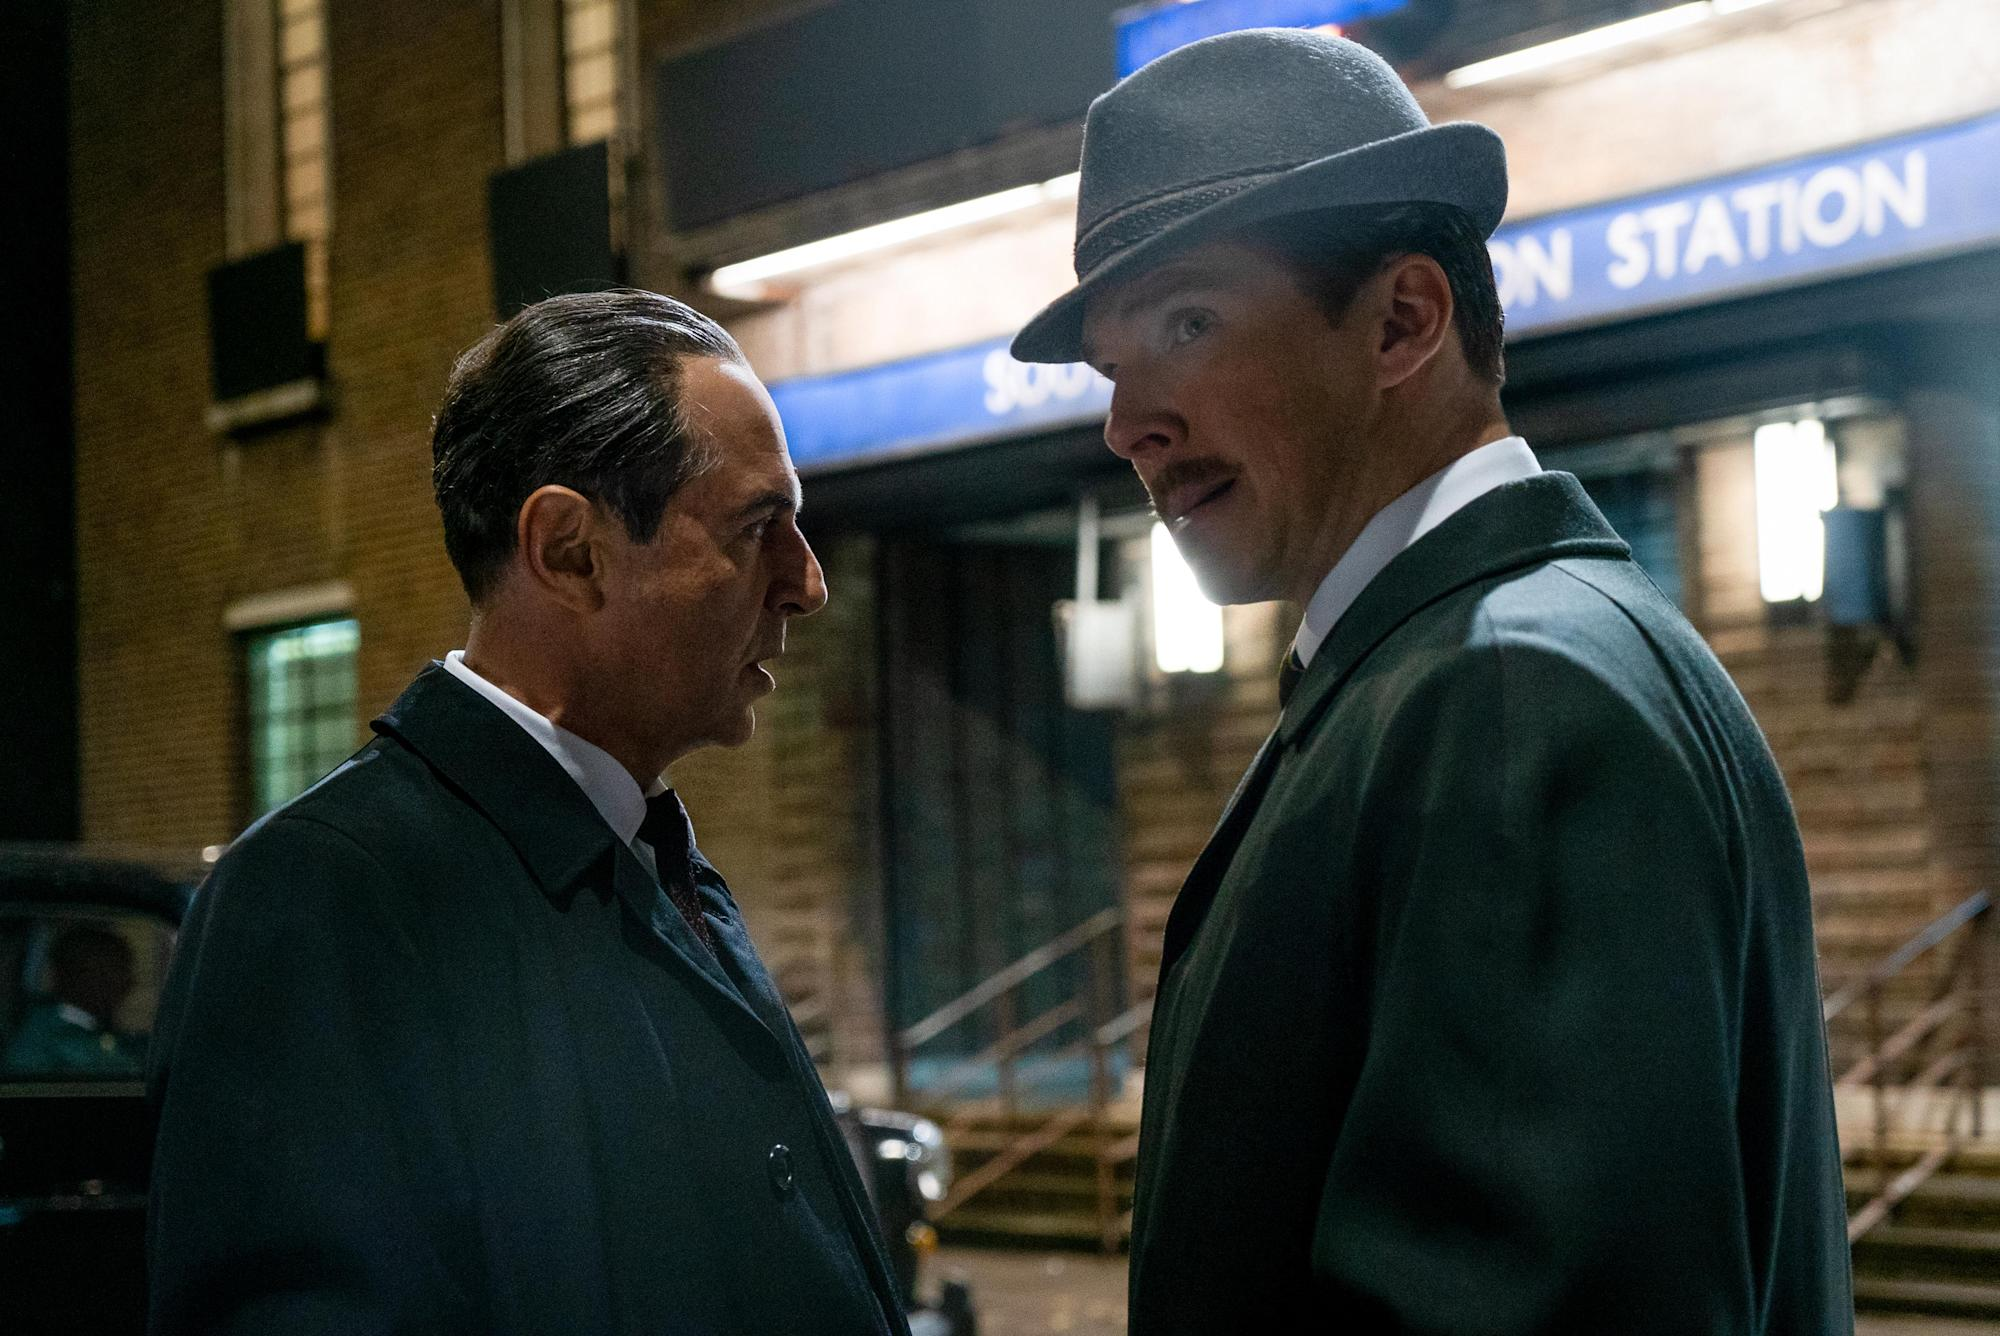 Benedict Cumberbatch Is a Spy With Soul in The Courier —But He's Not the Only Reason to Watch